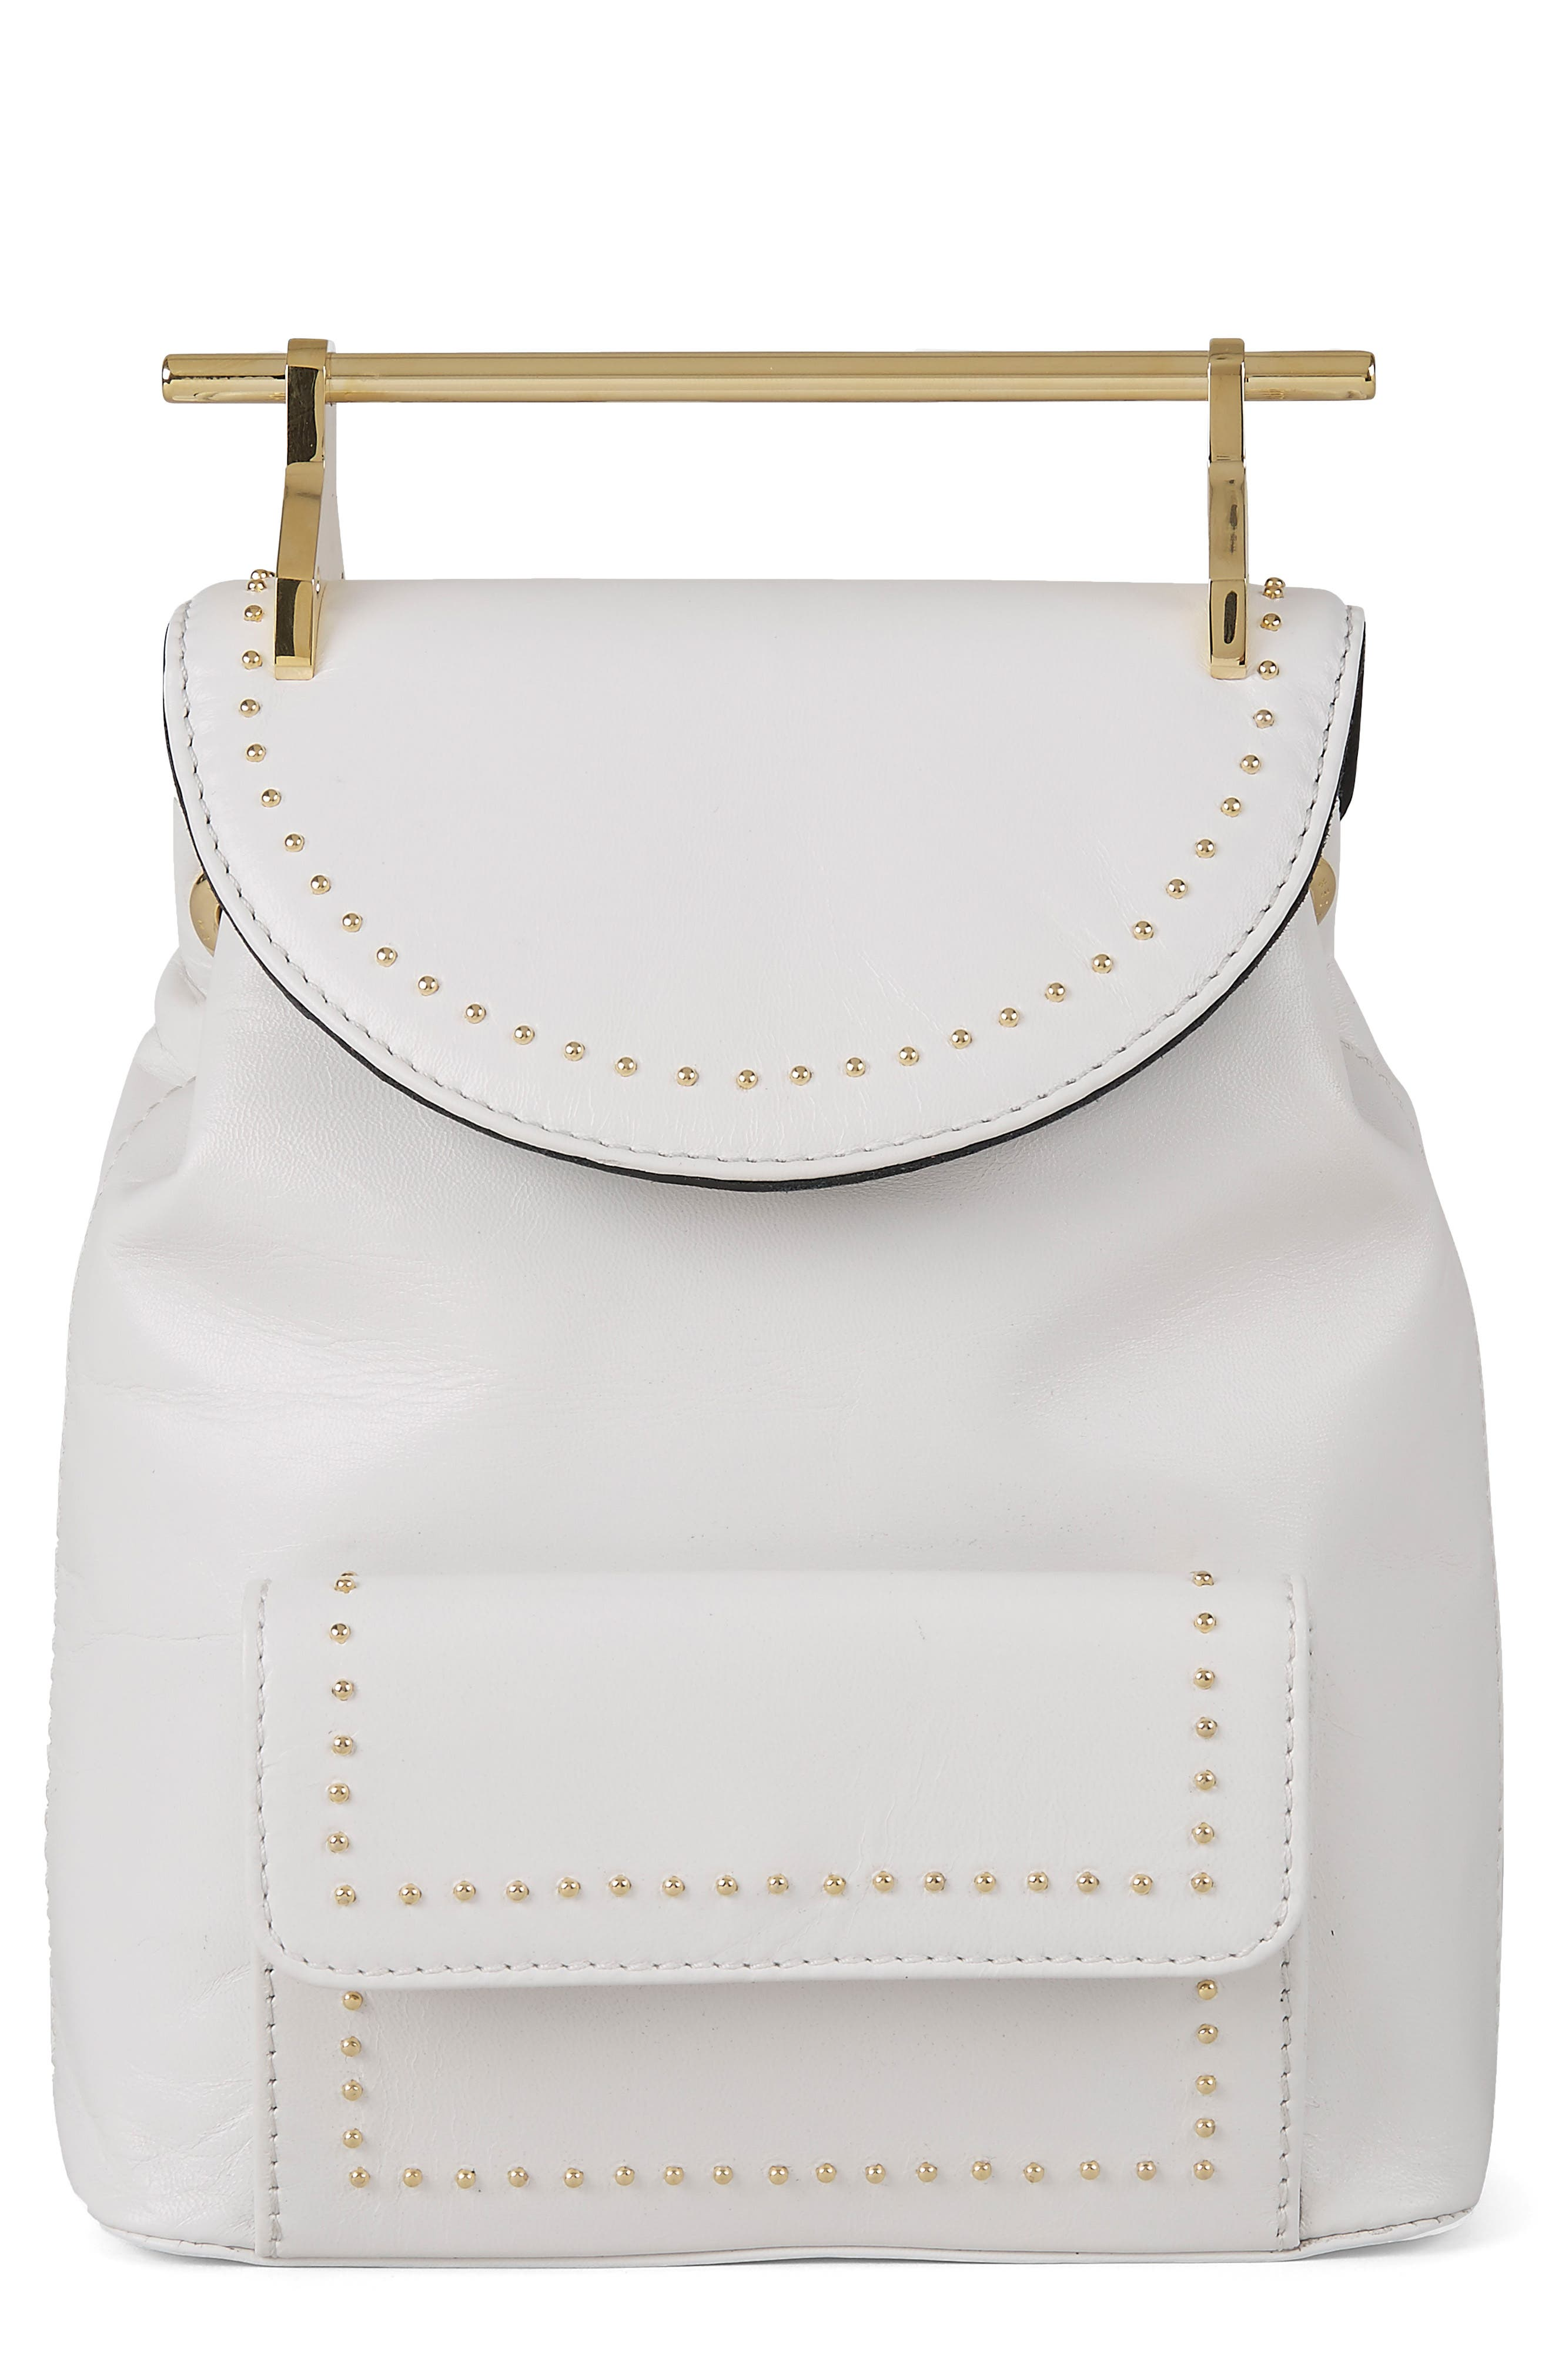 Mini Calfskin Leather Backpack,                         Main,                         color, Studded White/ Gold